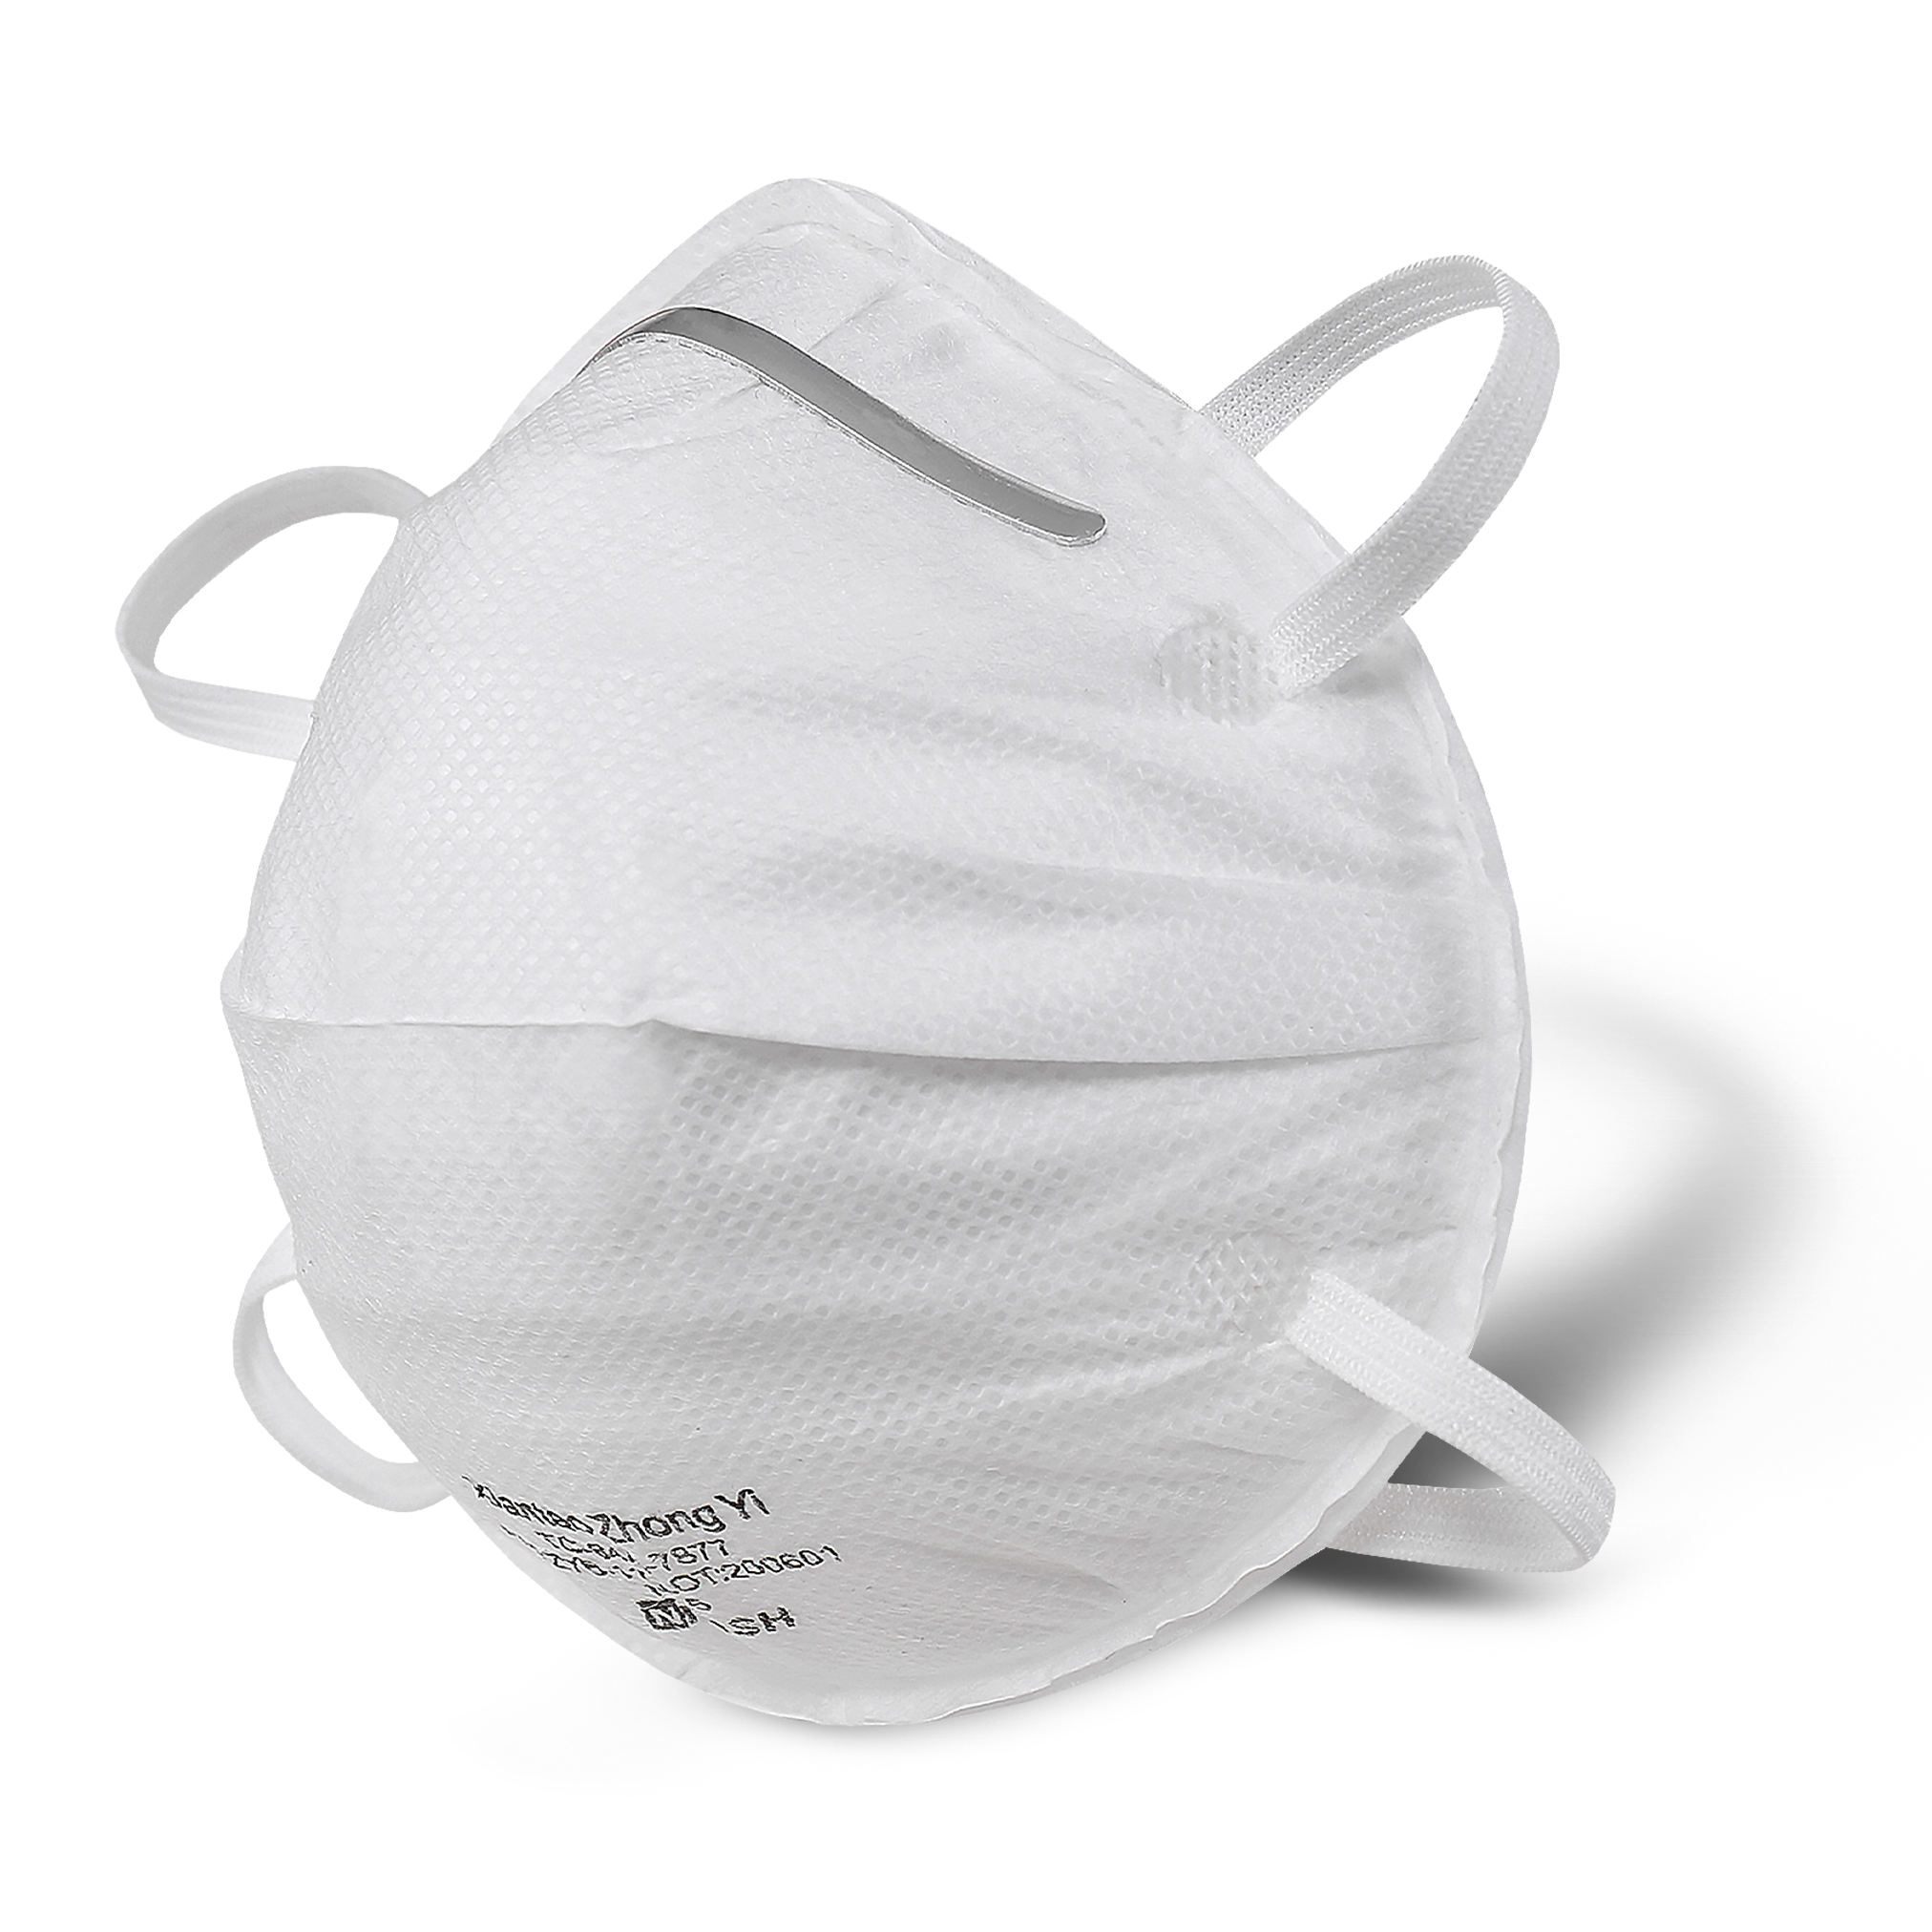 NIOSH Cup Style N95 Respirator Mask - 1000 Pack